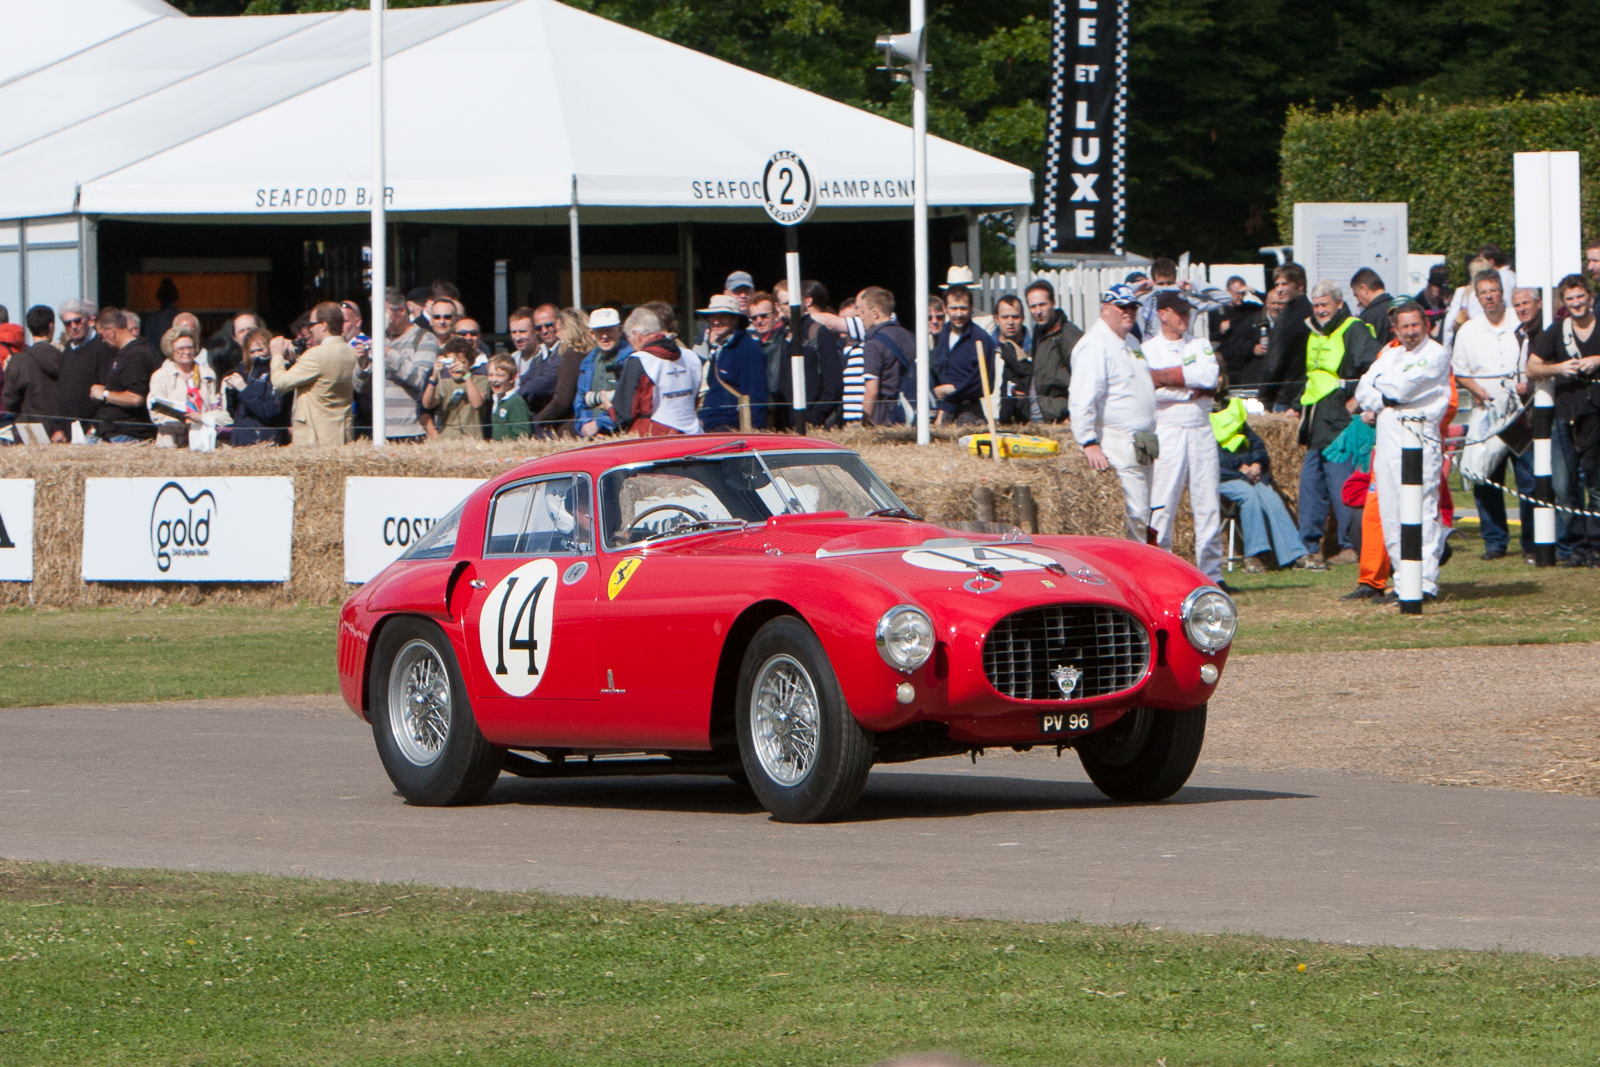 20080711 - Goodwood Festival of Speed -080711 -002